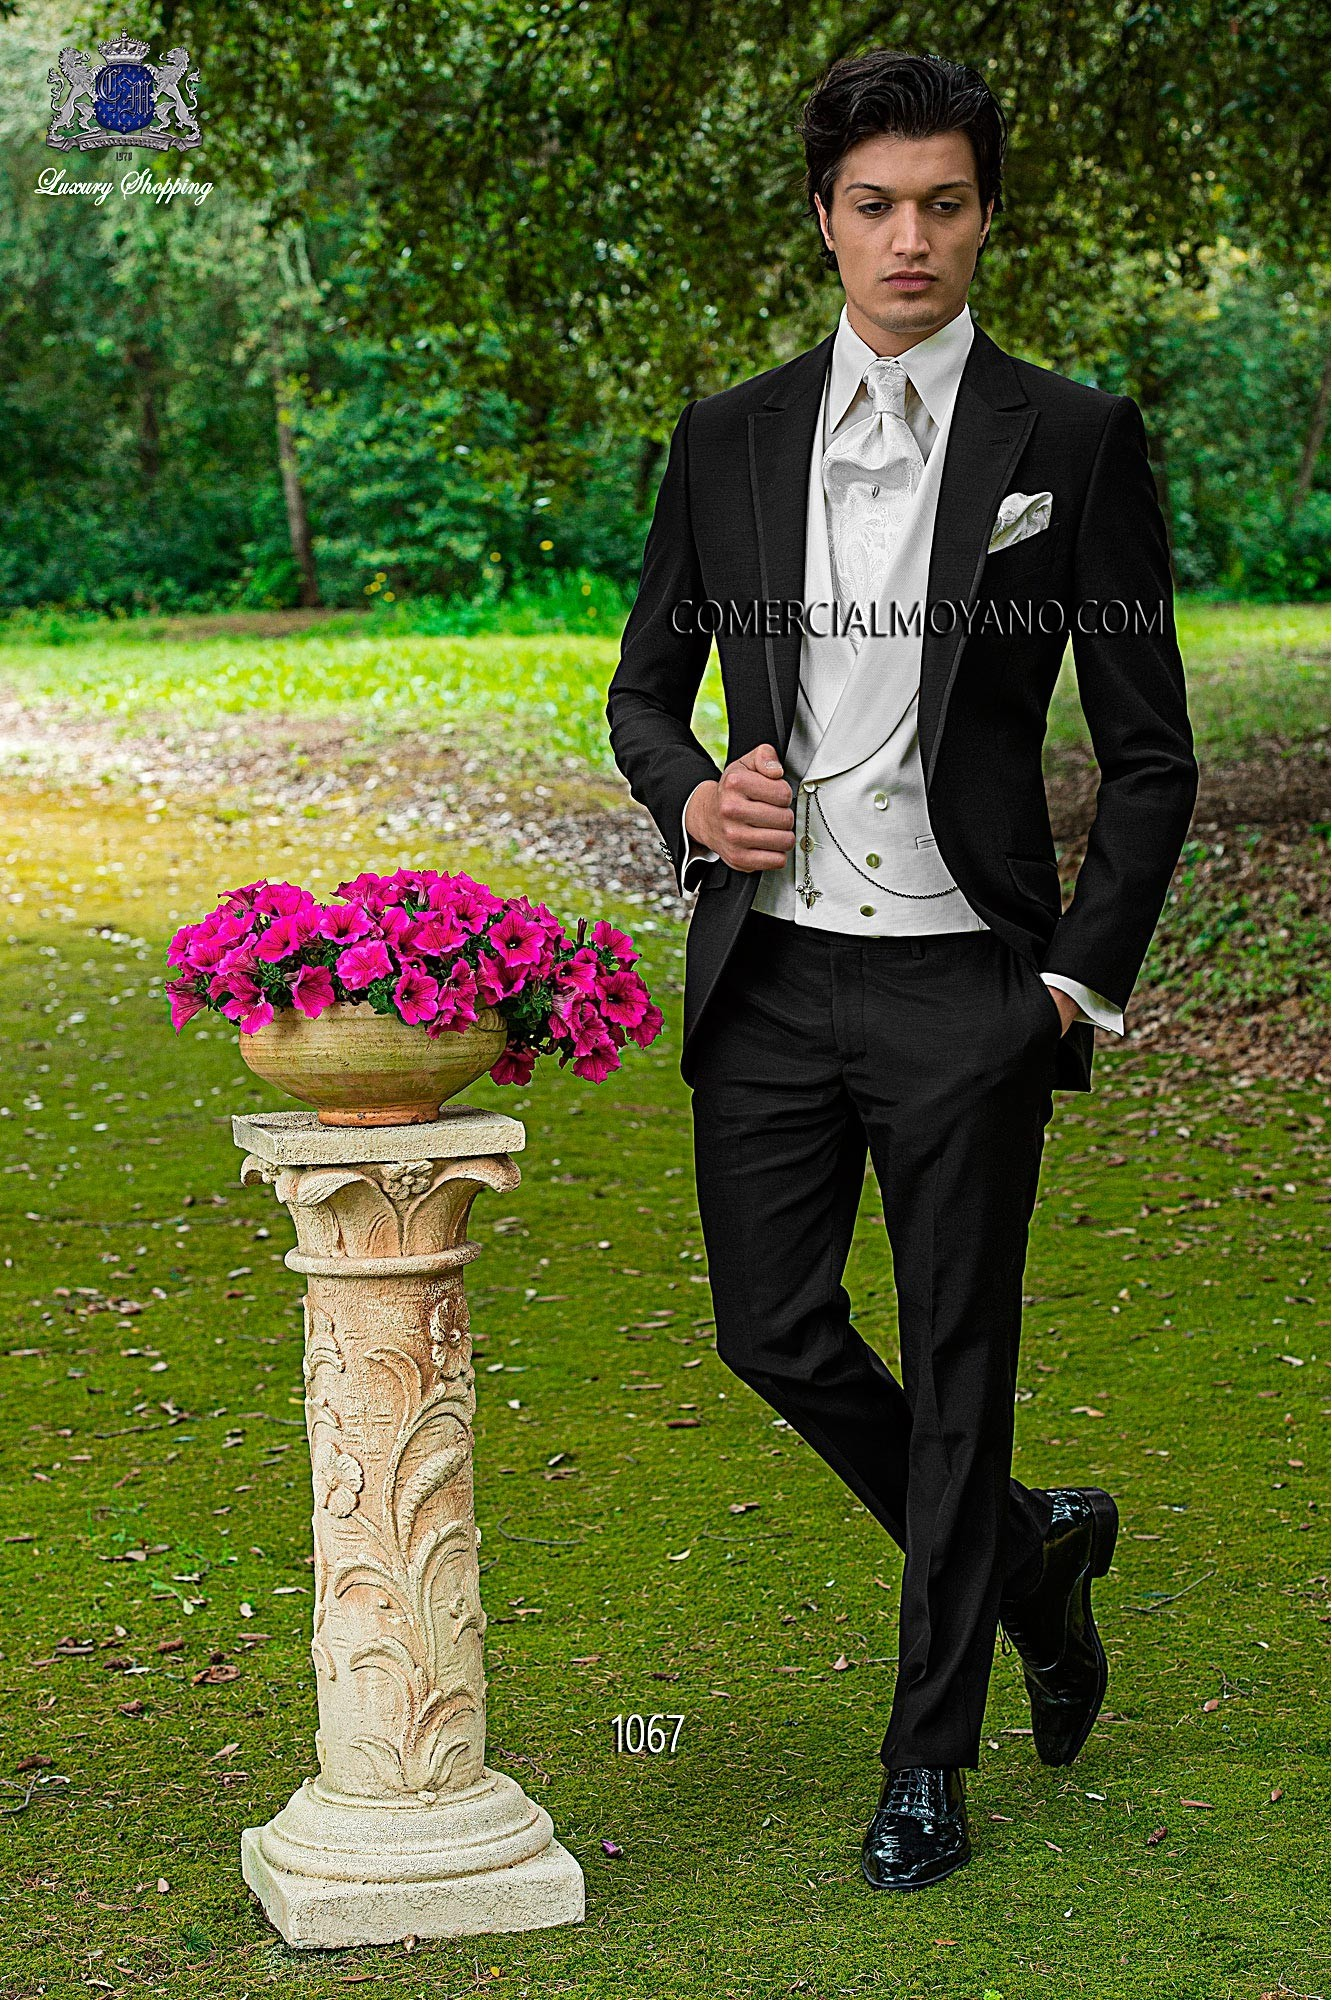 Fashion black men wedding suit model 1067 Ottavio Nuccio Gala